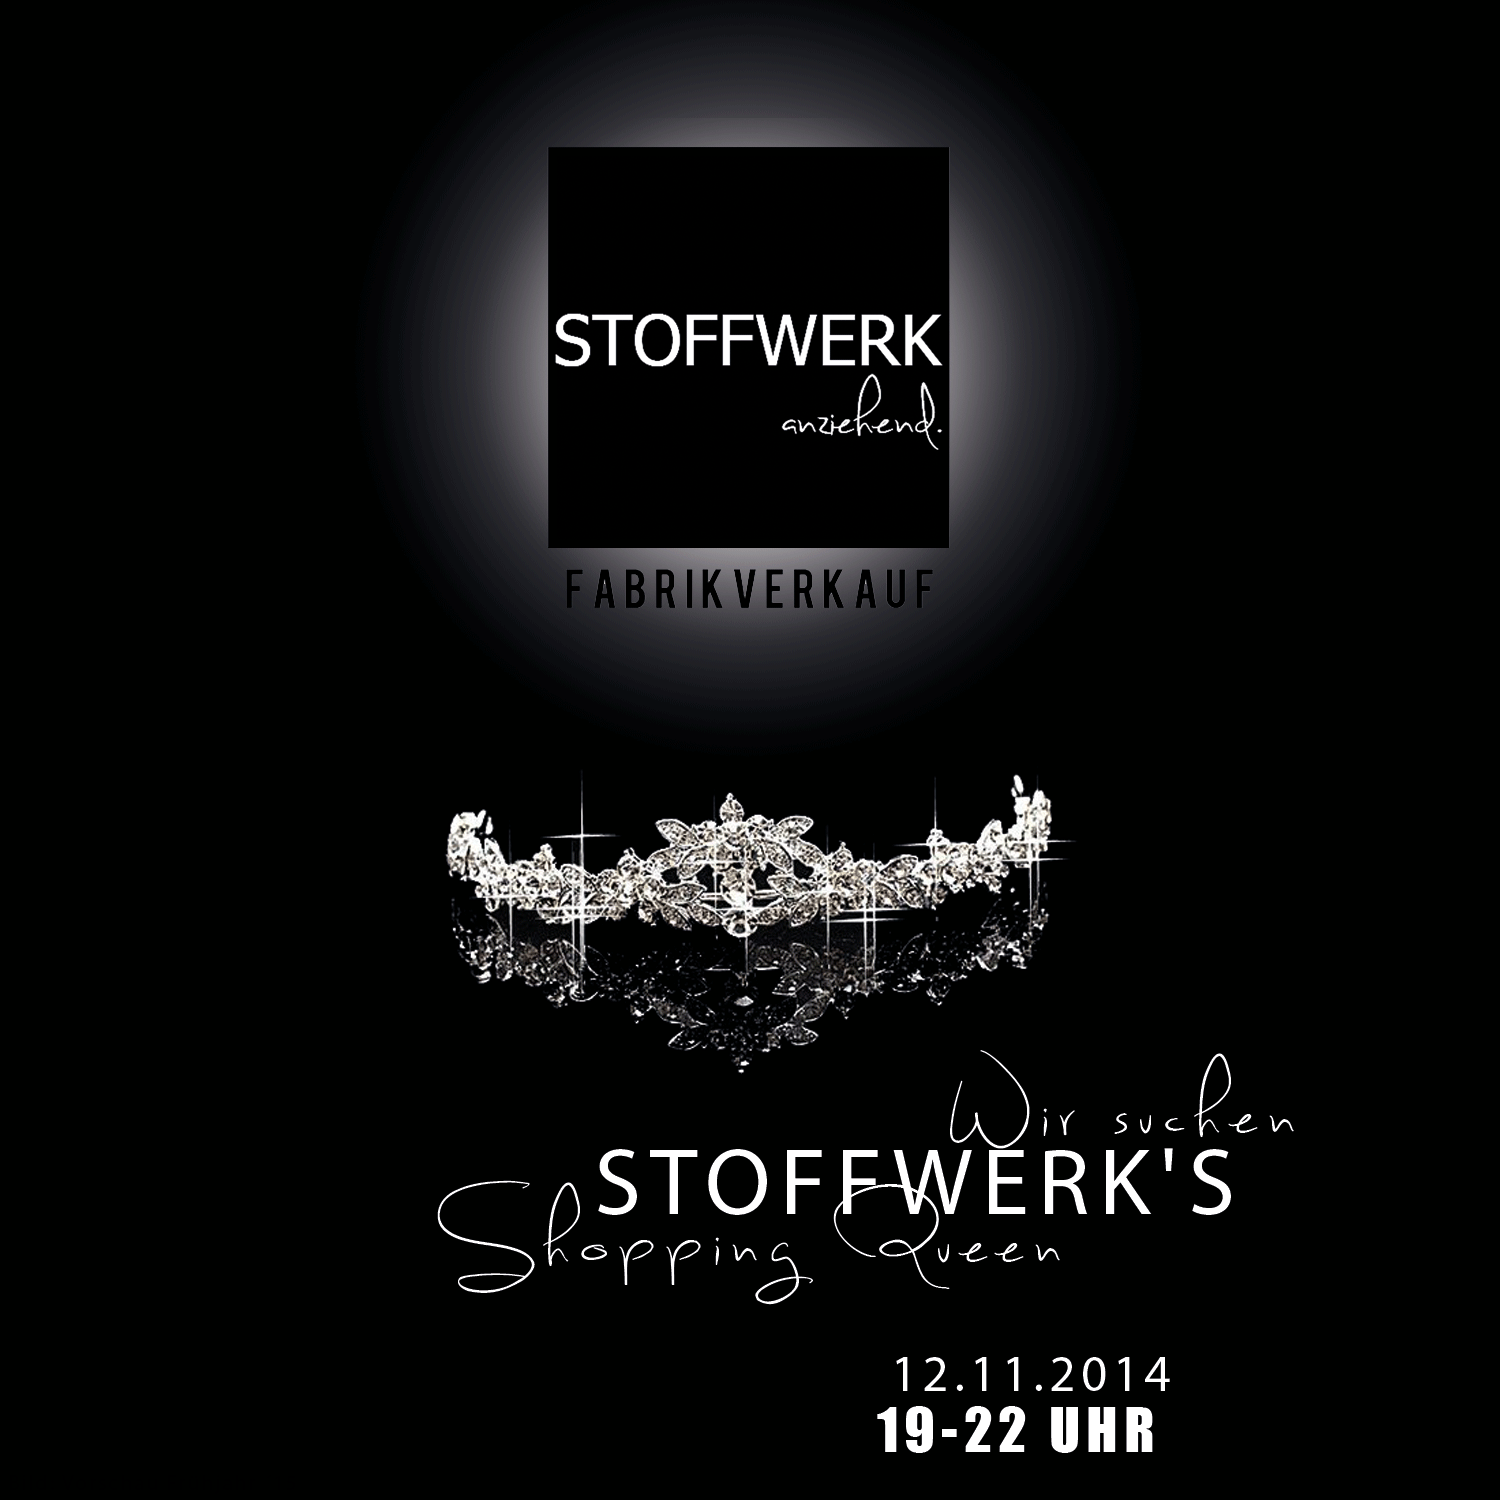 Stoffwerk's ShoppingQueen